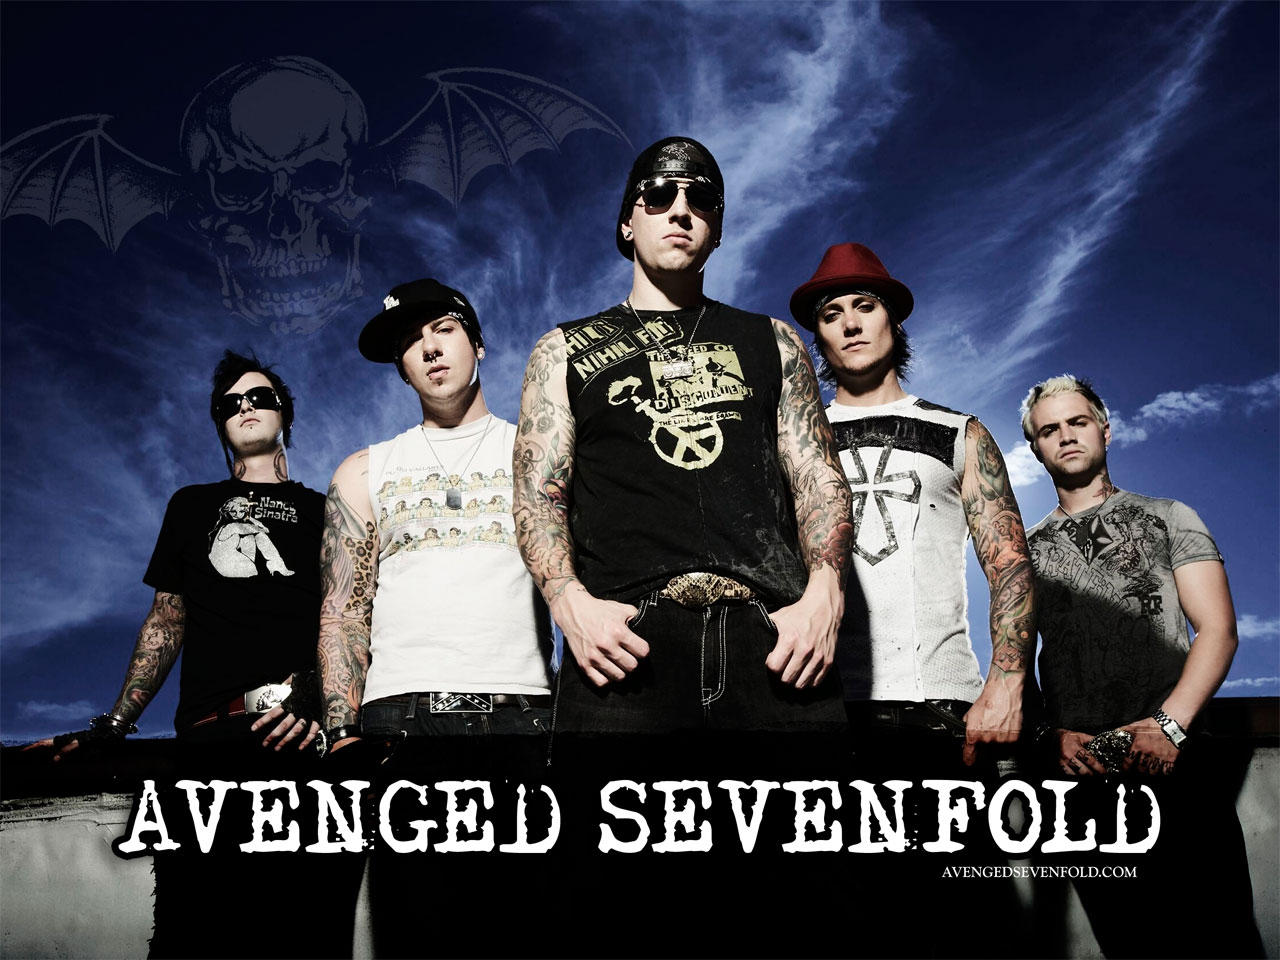 Avenged Sevenfolf